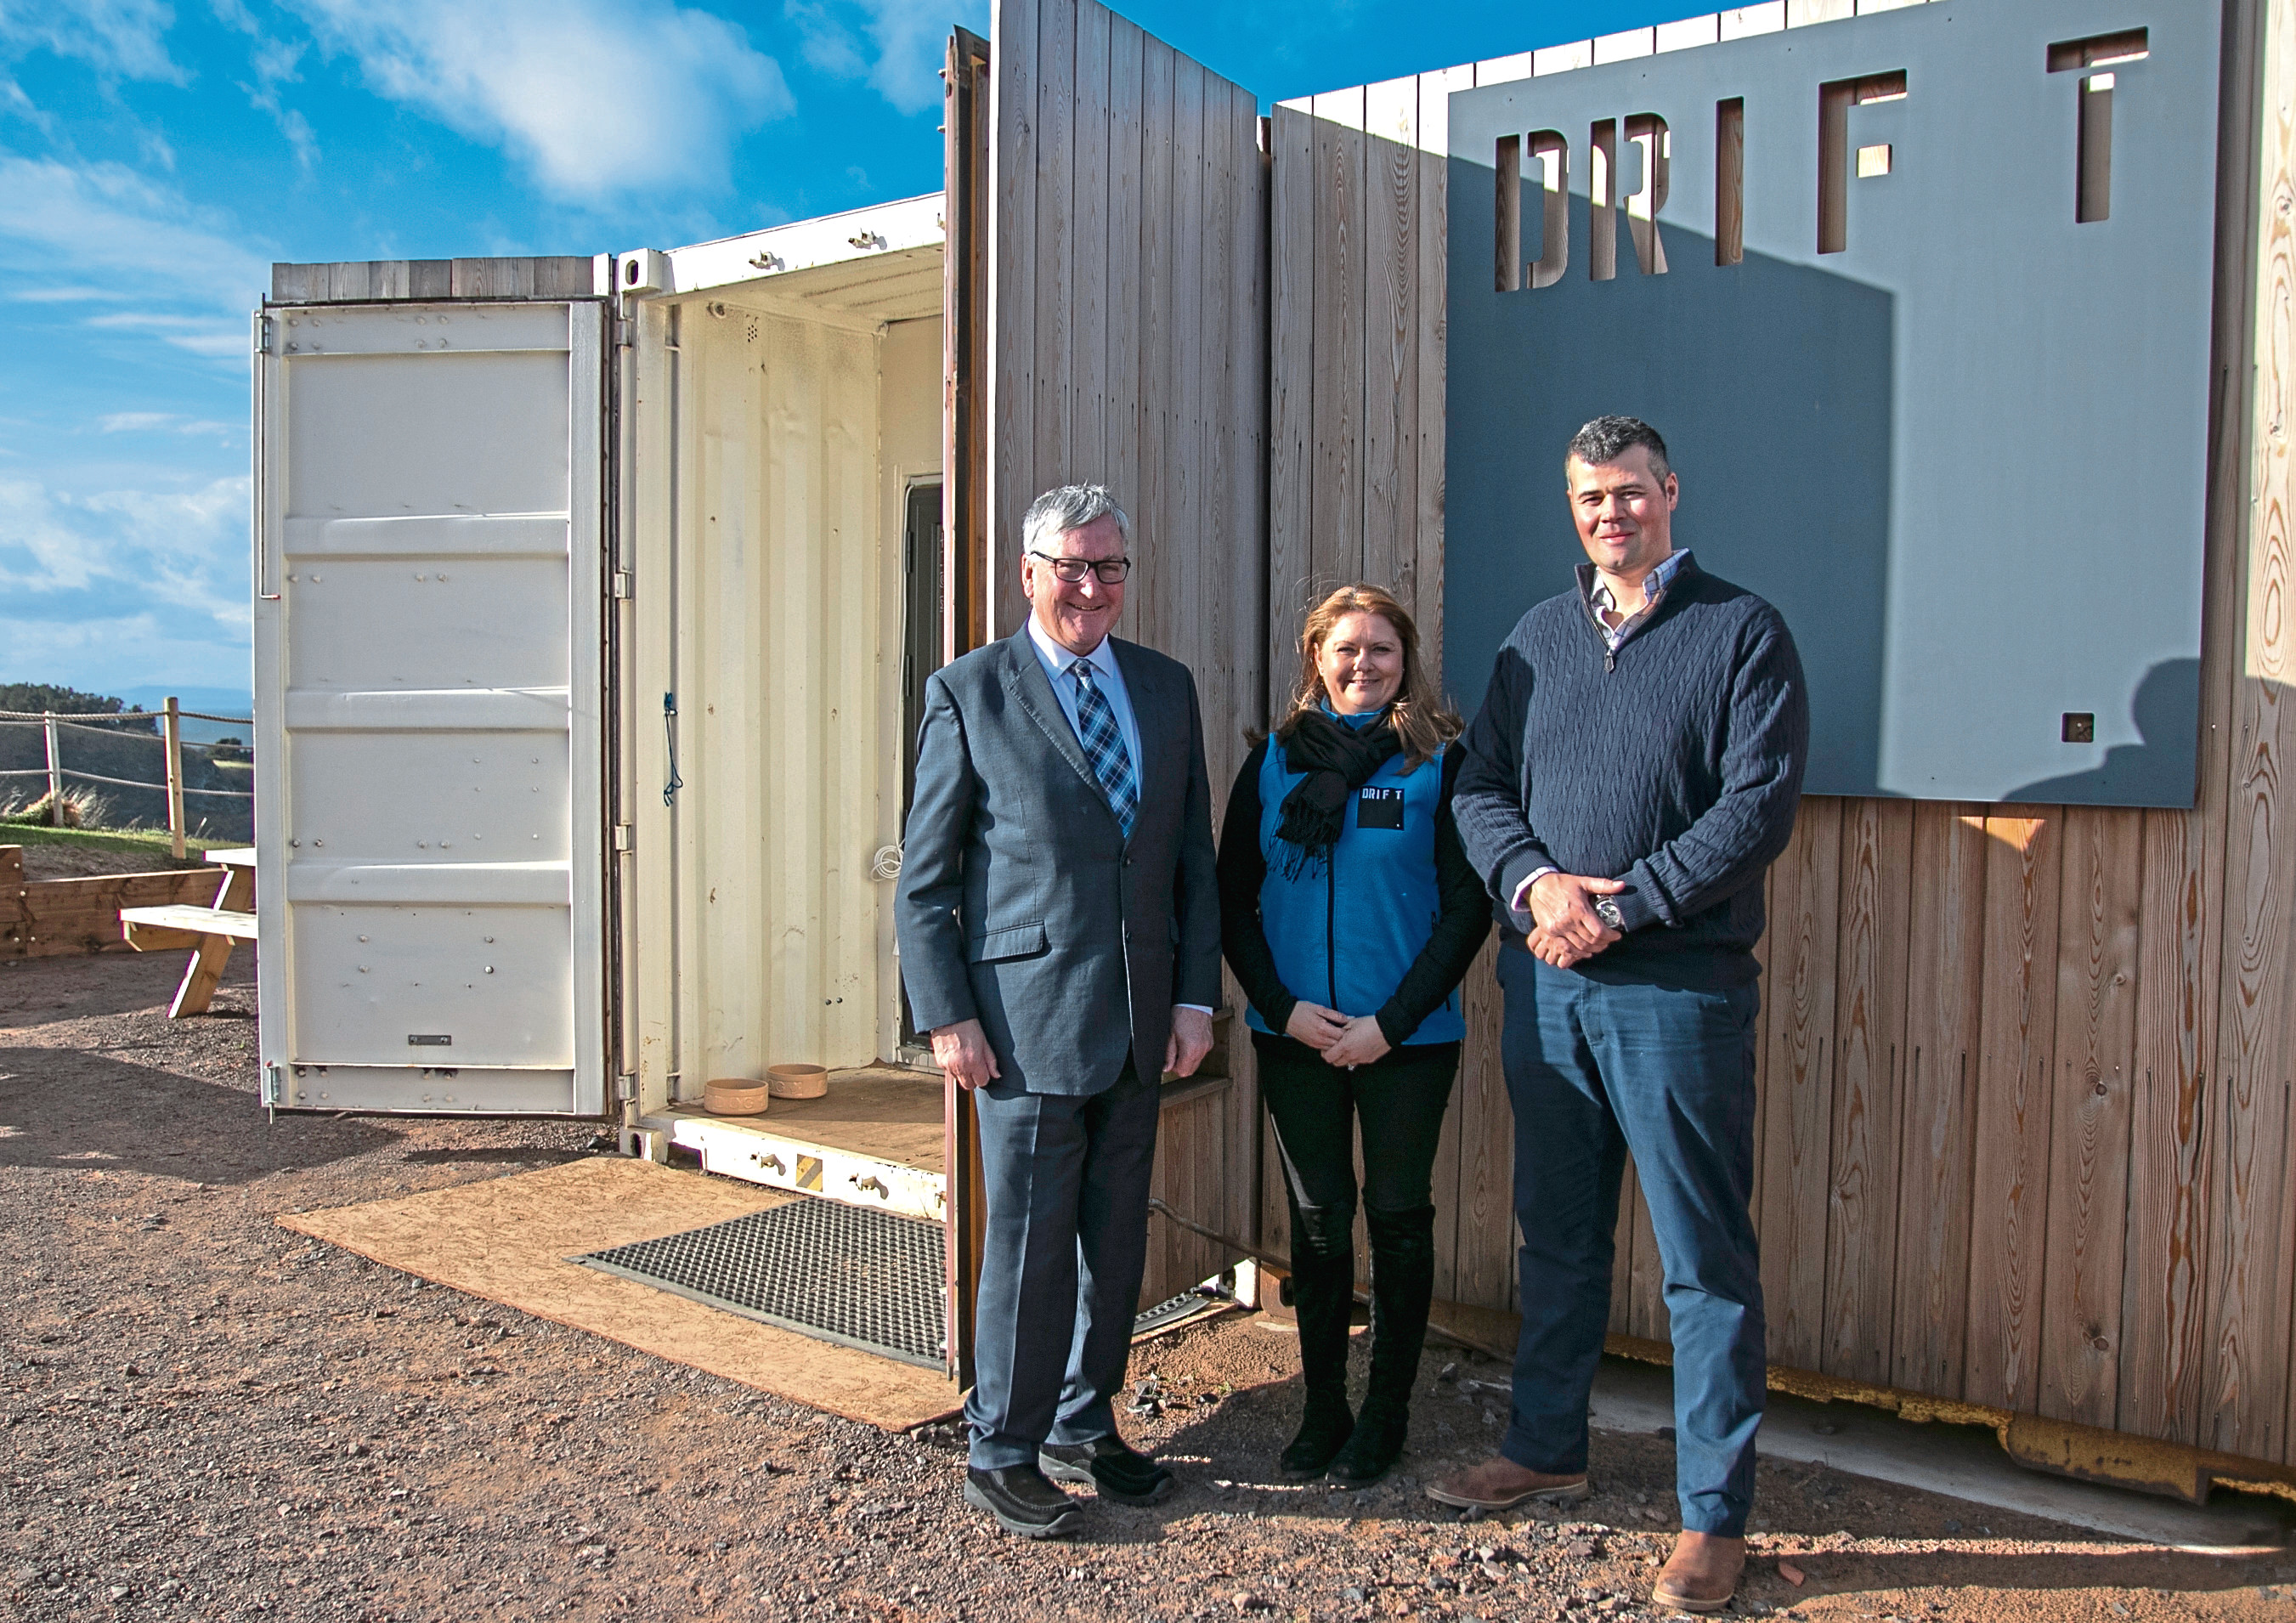 Fergus Ewing, Rural Economy Secretary, visits Drift cafe near North Berwick. Also photographed are Stuart and Jo McNicol of Drift, Castleton Farm.